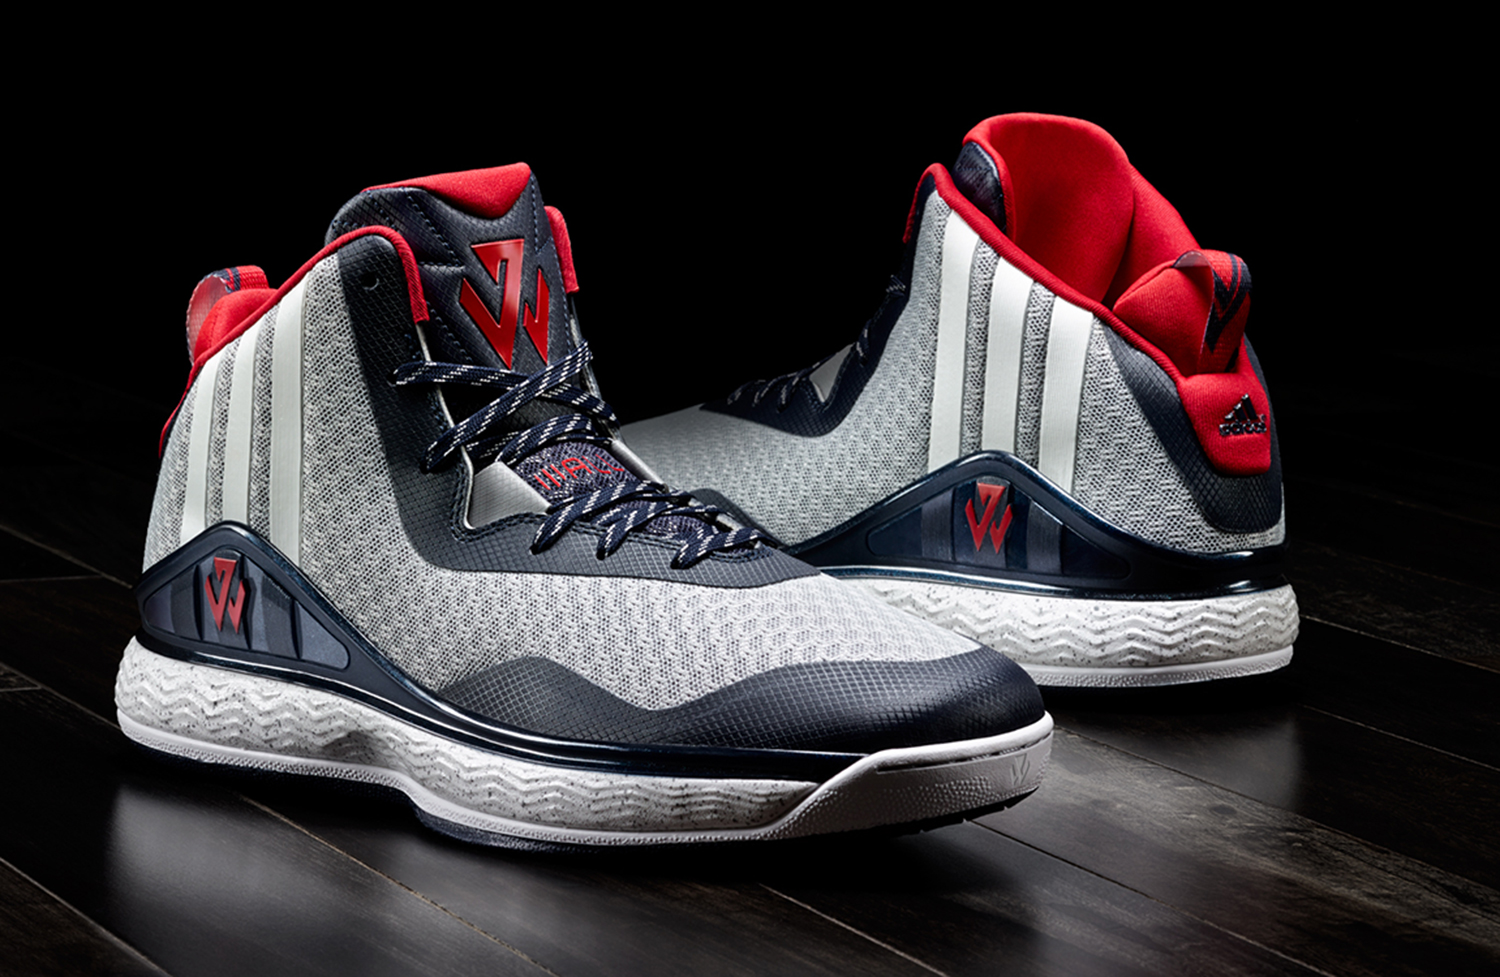 """The first signature shoe for the Washington Wizards star comes with some understated style. The JW logo plays through the shoe and the U.S. map on the sole with """"Wall"""" written across the left and right shoe adds personalized touches. The technology that includes an air mesh textile upper with overlays help the materials show off a mix of colors that work on or off the court."""